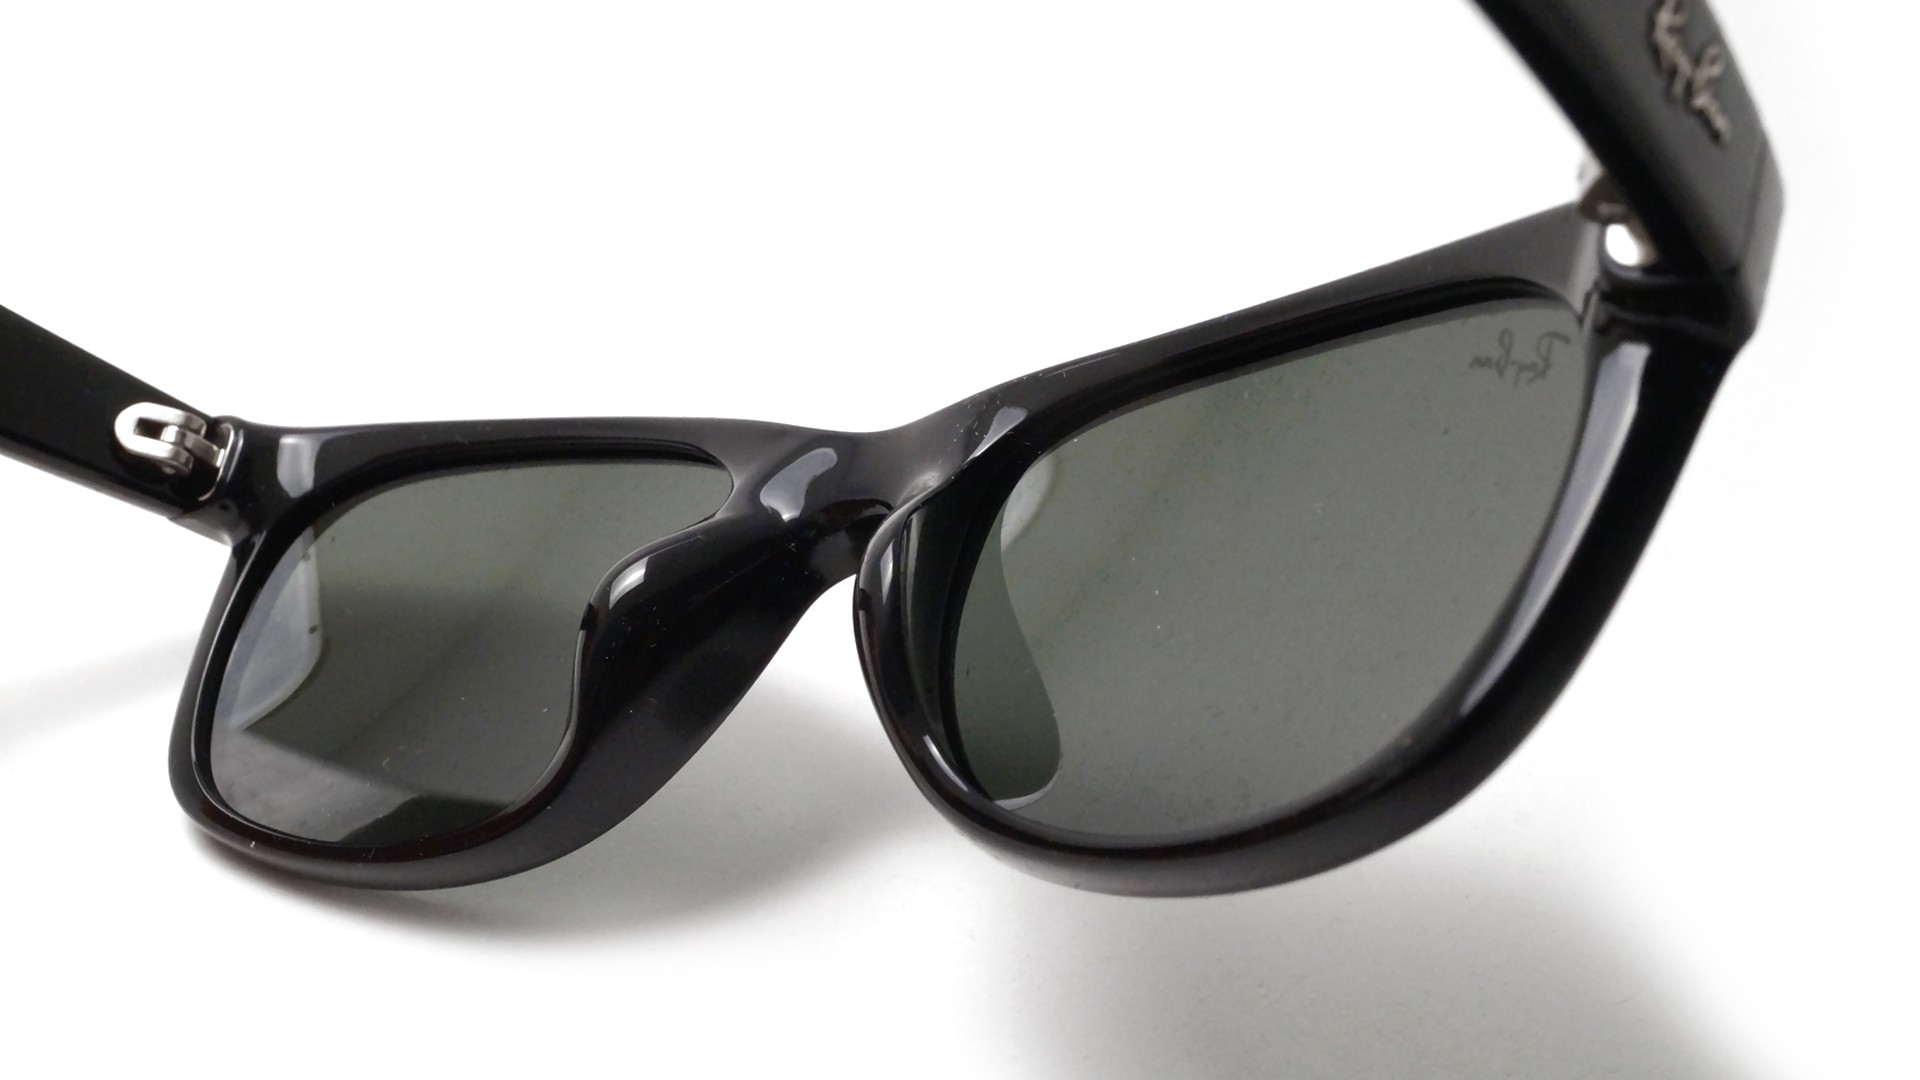 ray ban 901  Ban New Wayfarer Asian Fit Black G15 RB2132F 901 52 18